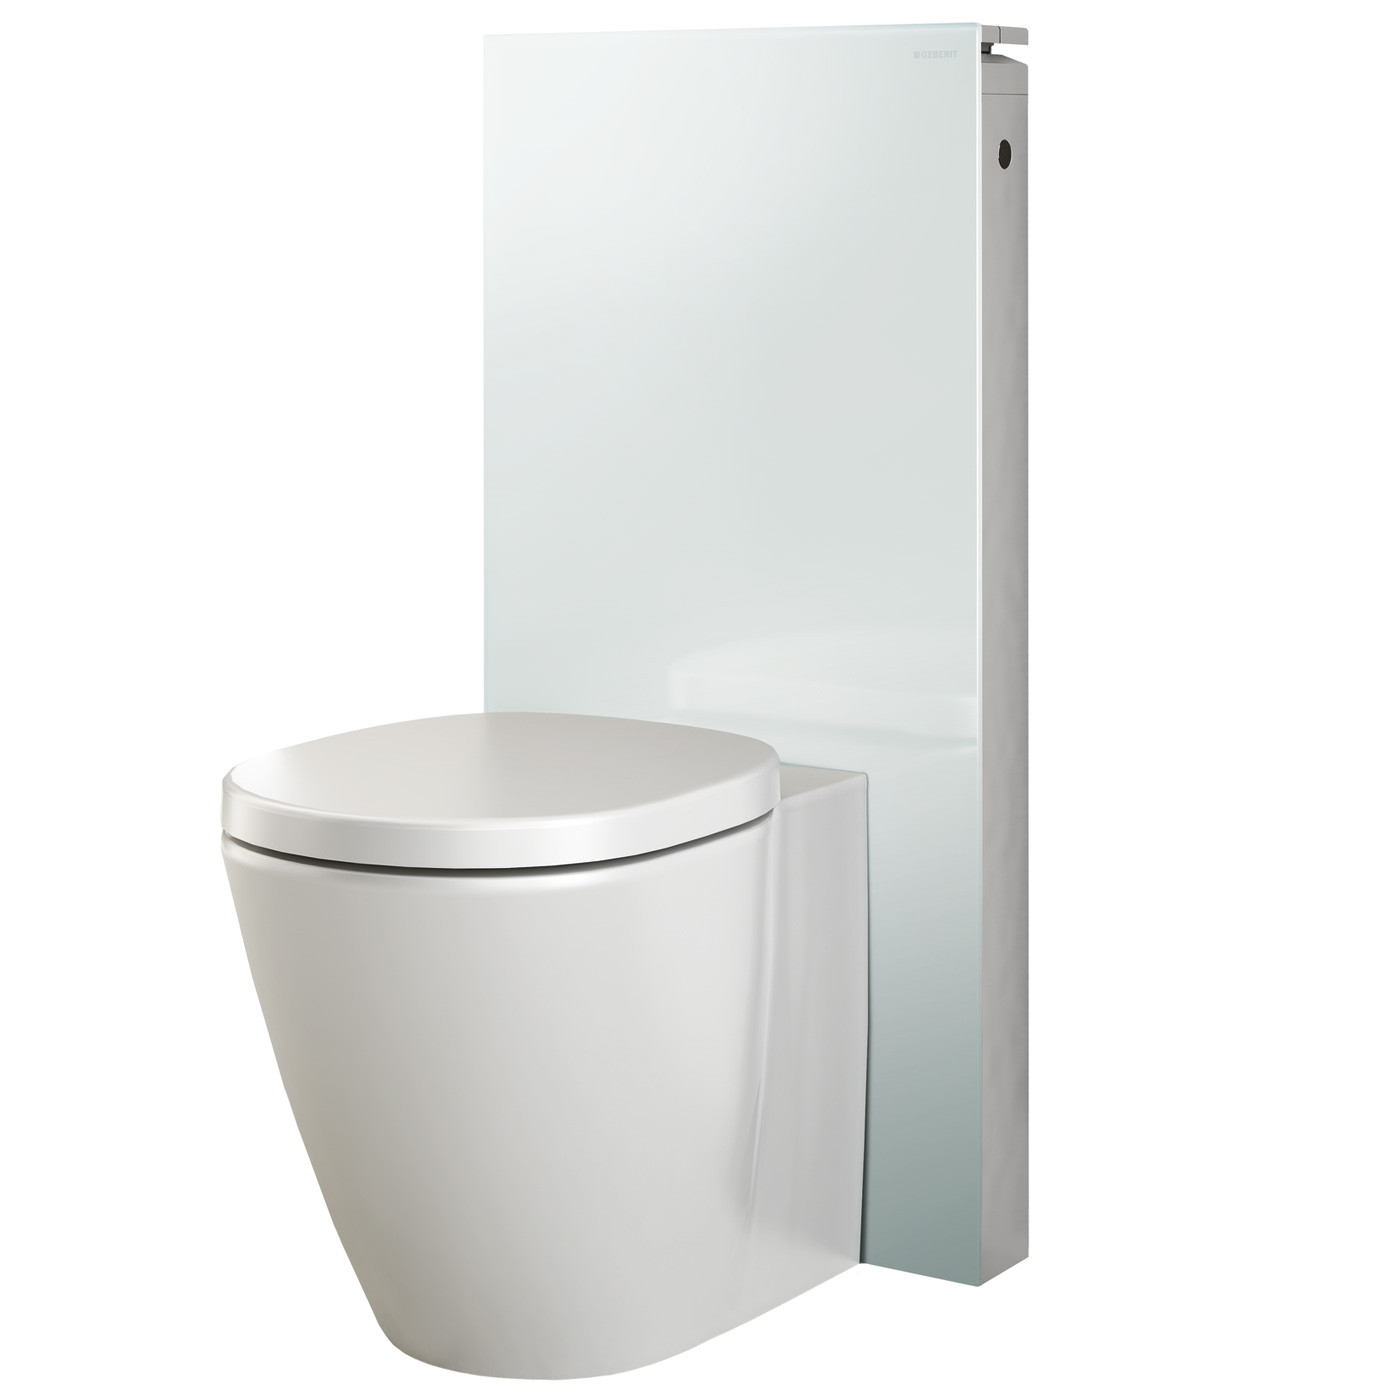 Seinä-WC-elementti Monolith back-to-wall wc:lle, valkoinen, 101cm